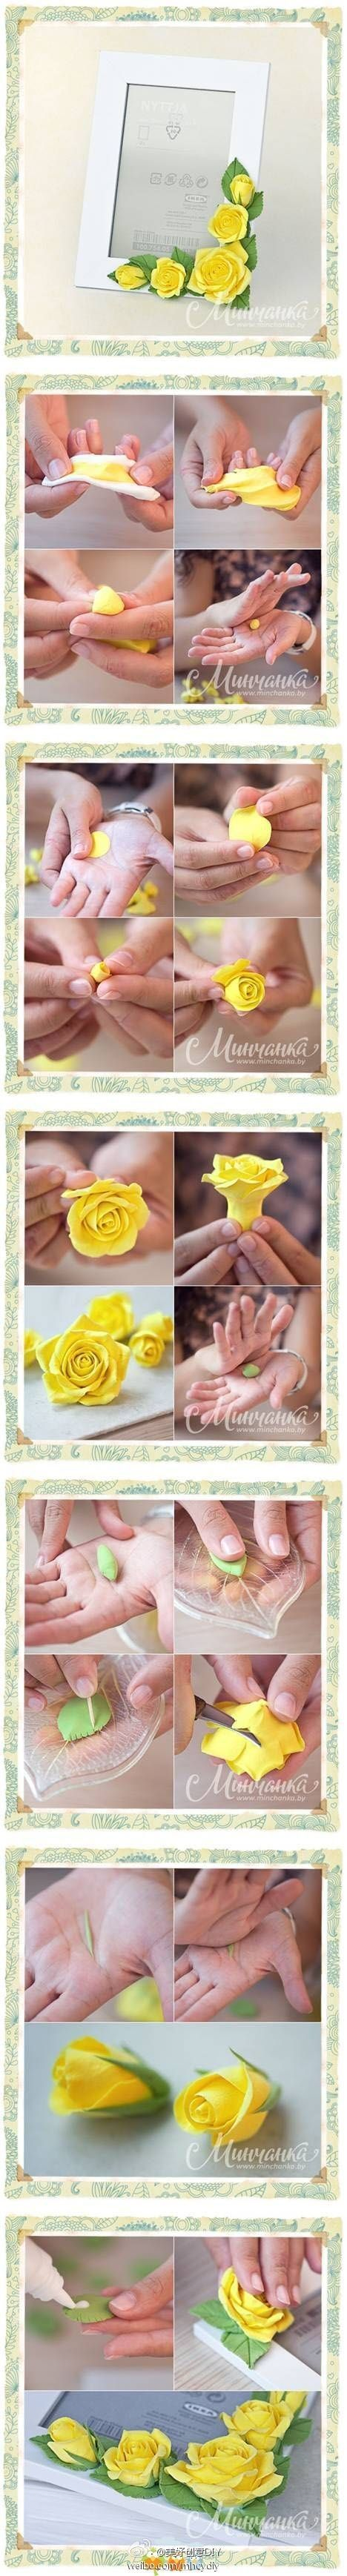 Sculpting roses for a picture frame - wow! I love the results! Not sure if they're using polymer clay and something like TLS, or an air-dry clay and glue. I suppose you could do it either way.